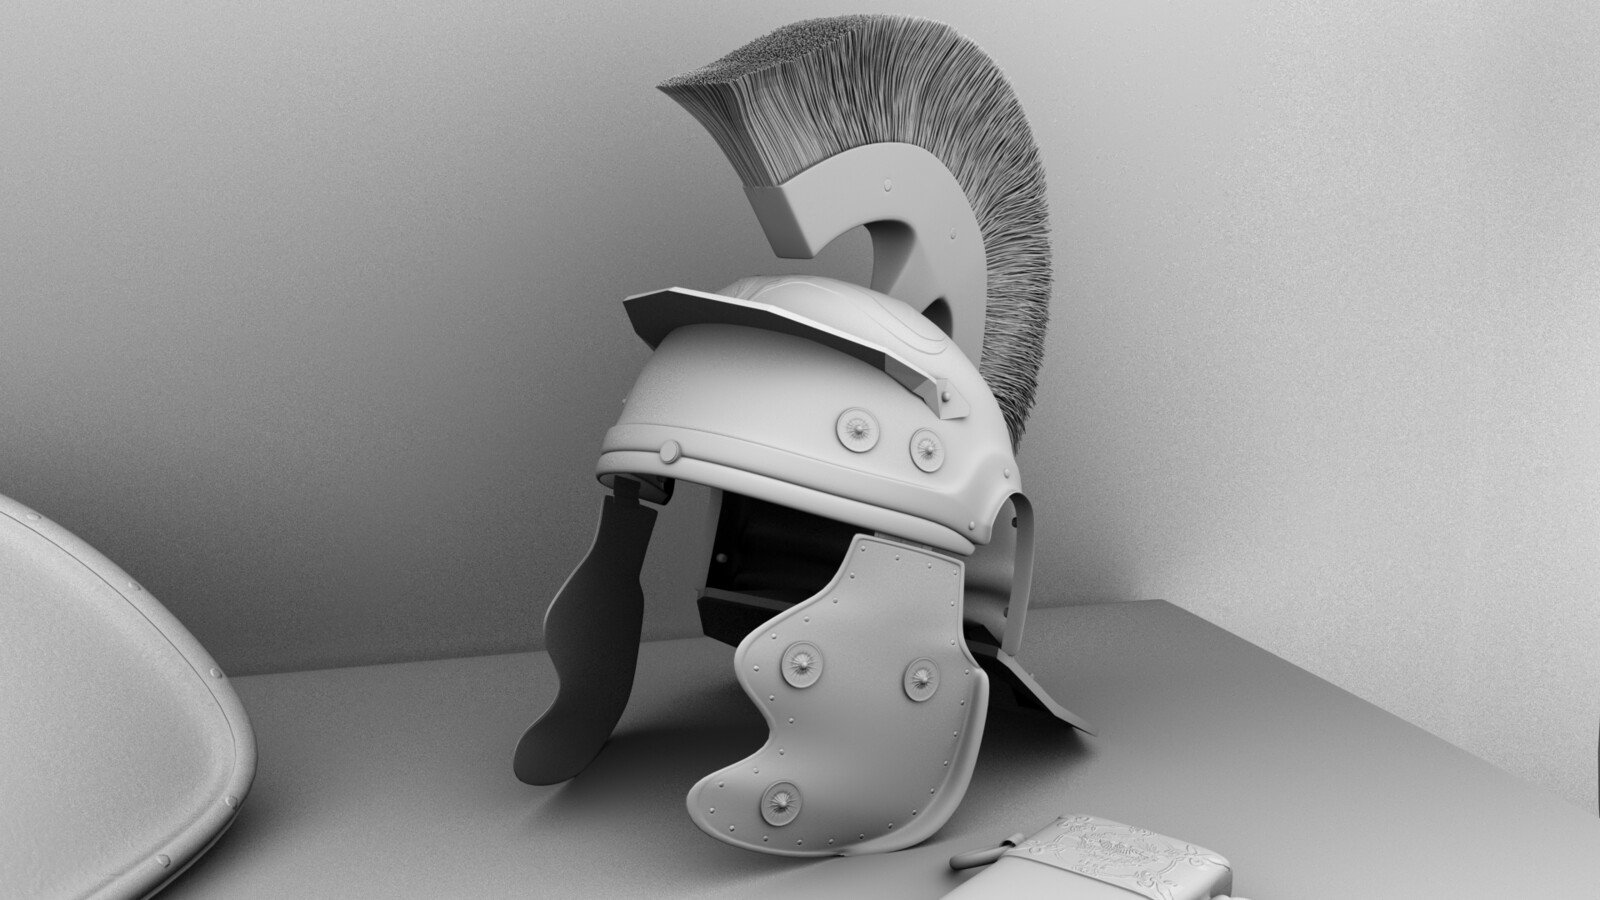 Galea - Ambient Occlusion